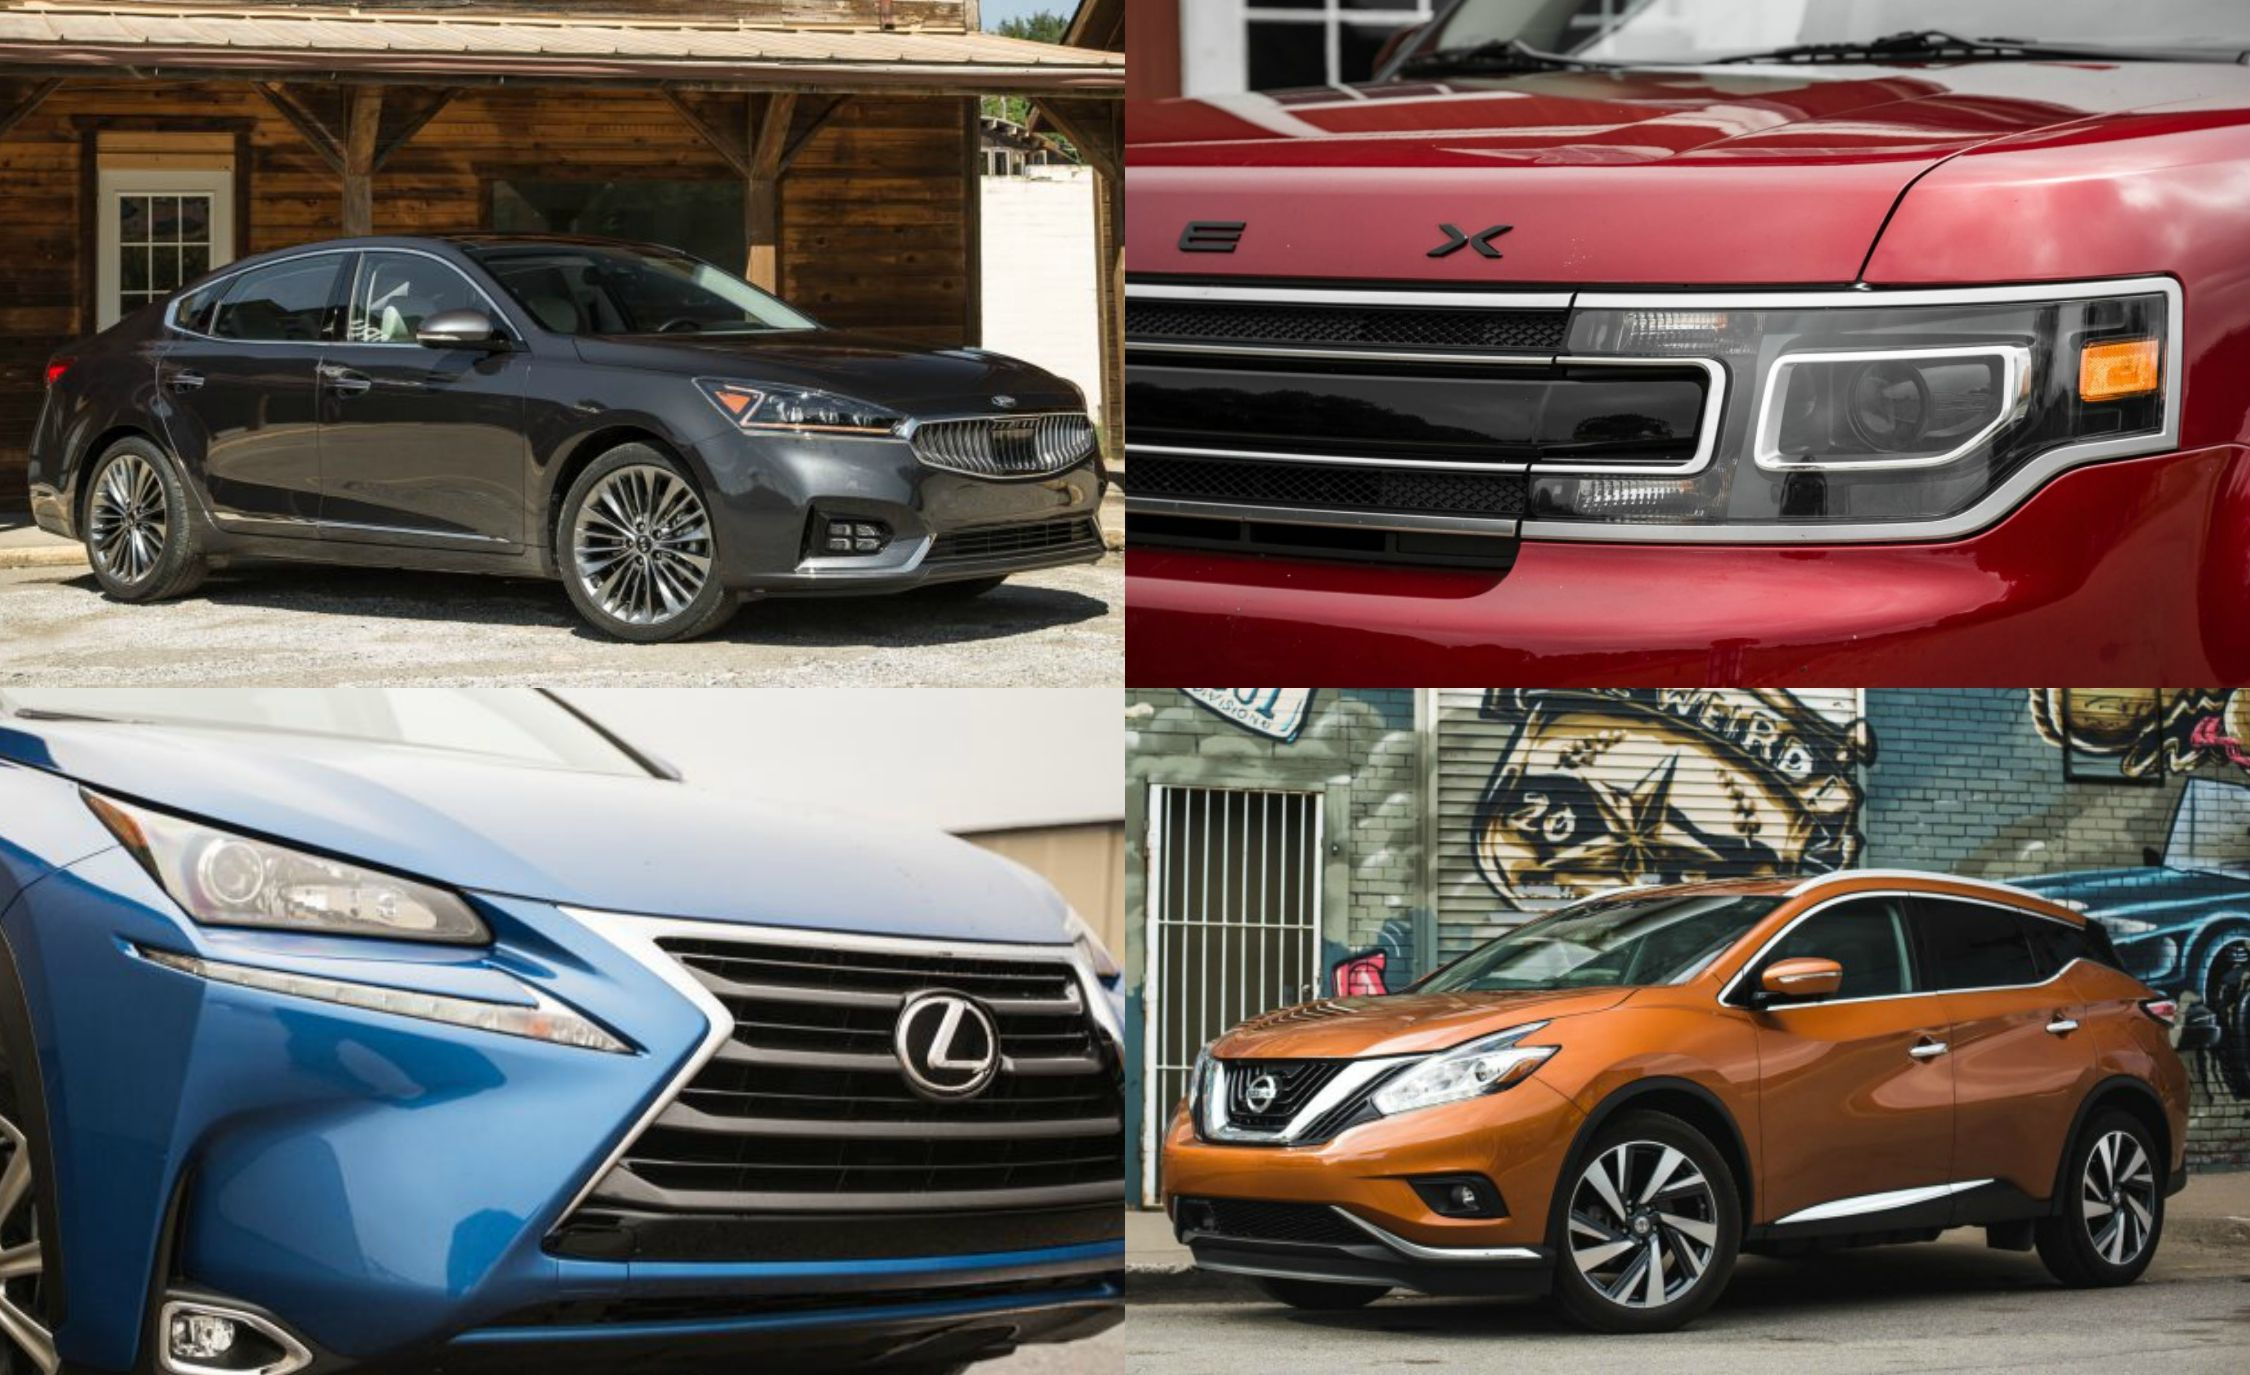 The 10 Most Comfortable New Cars and Crossover SUVs for Less Than $40,000